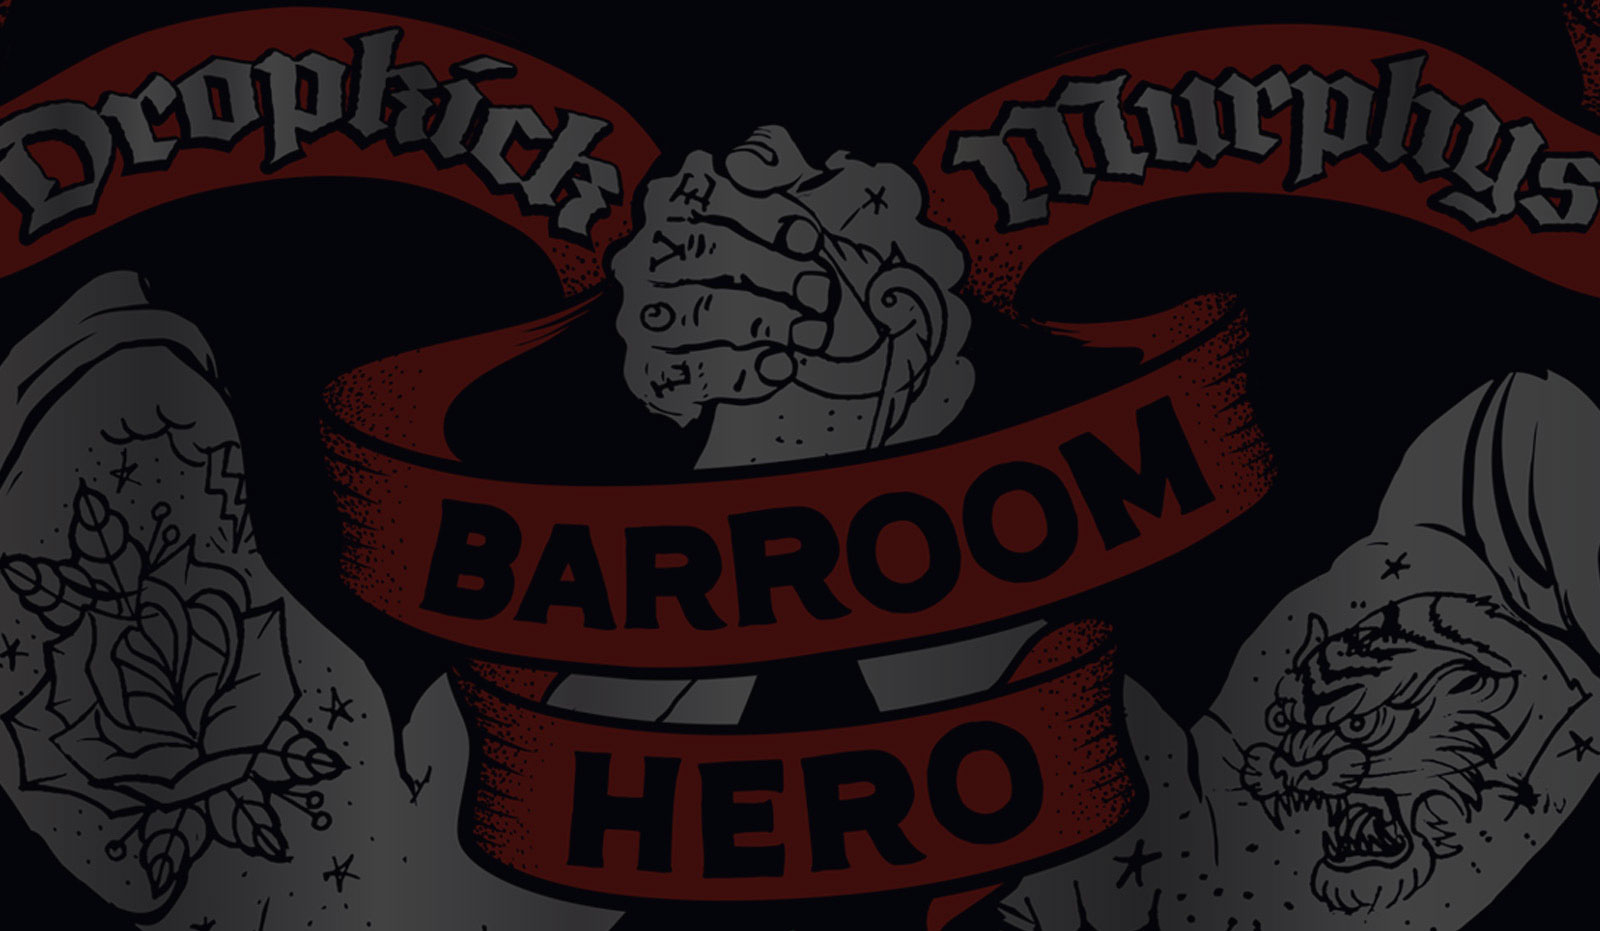 barroom hero